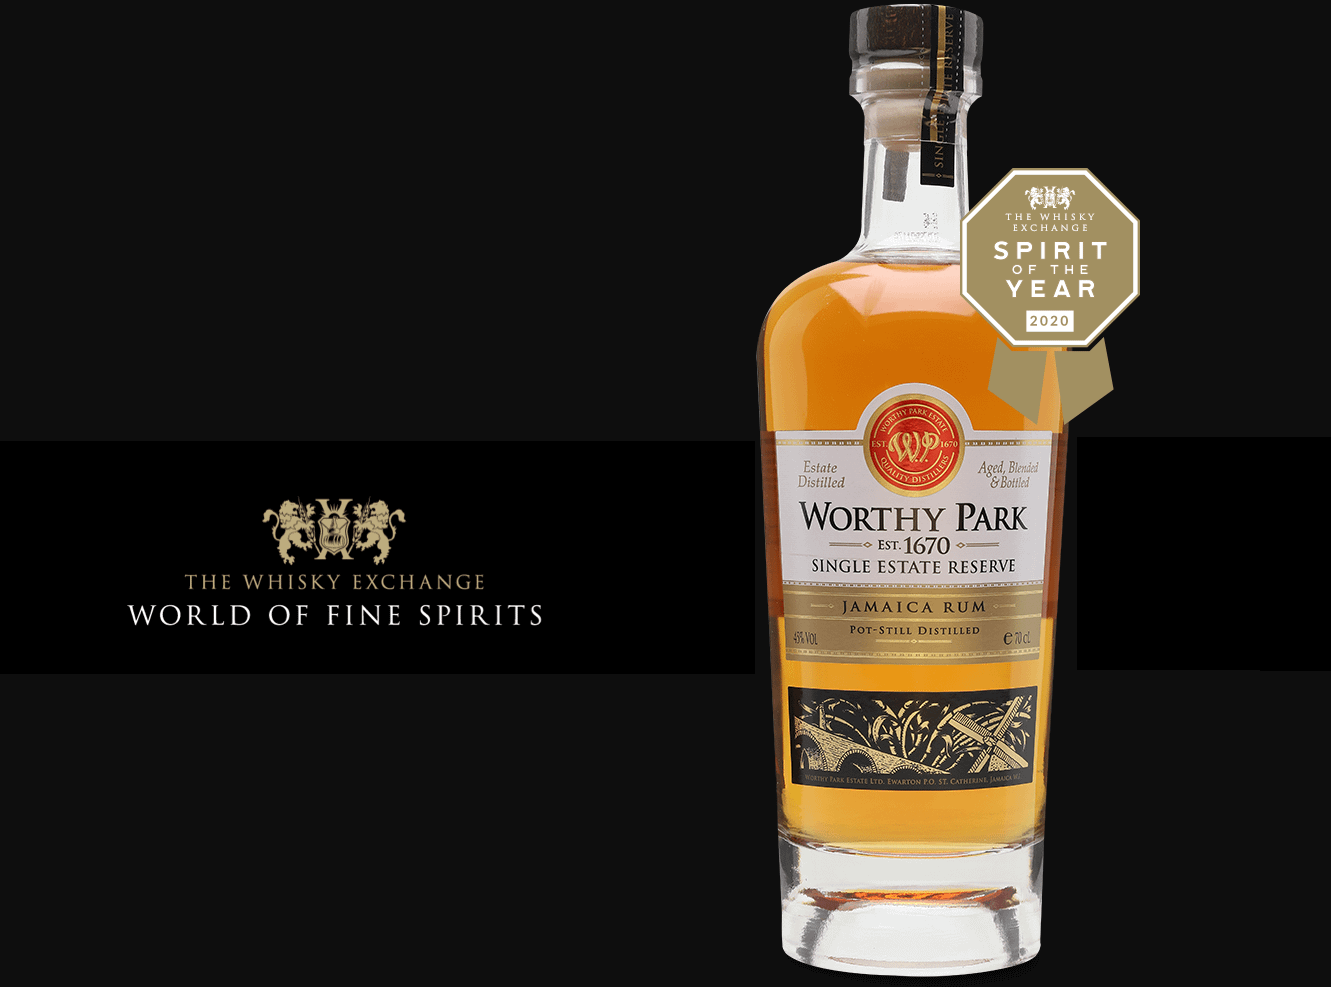 Worthy Park Single Estate Reserve destilátem roku na The Whisky Exchange